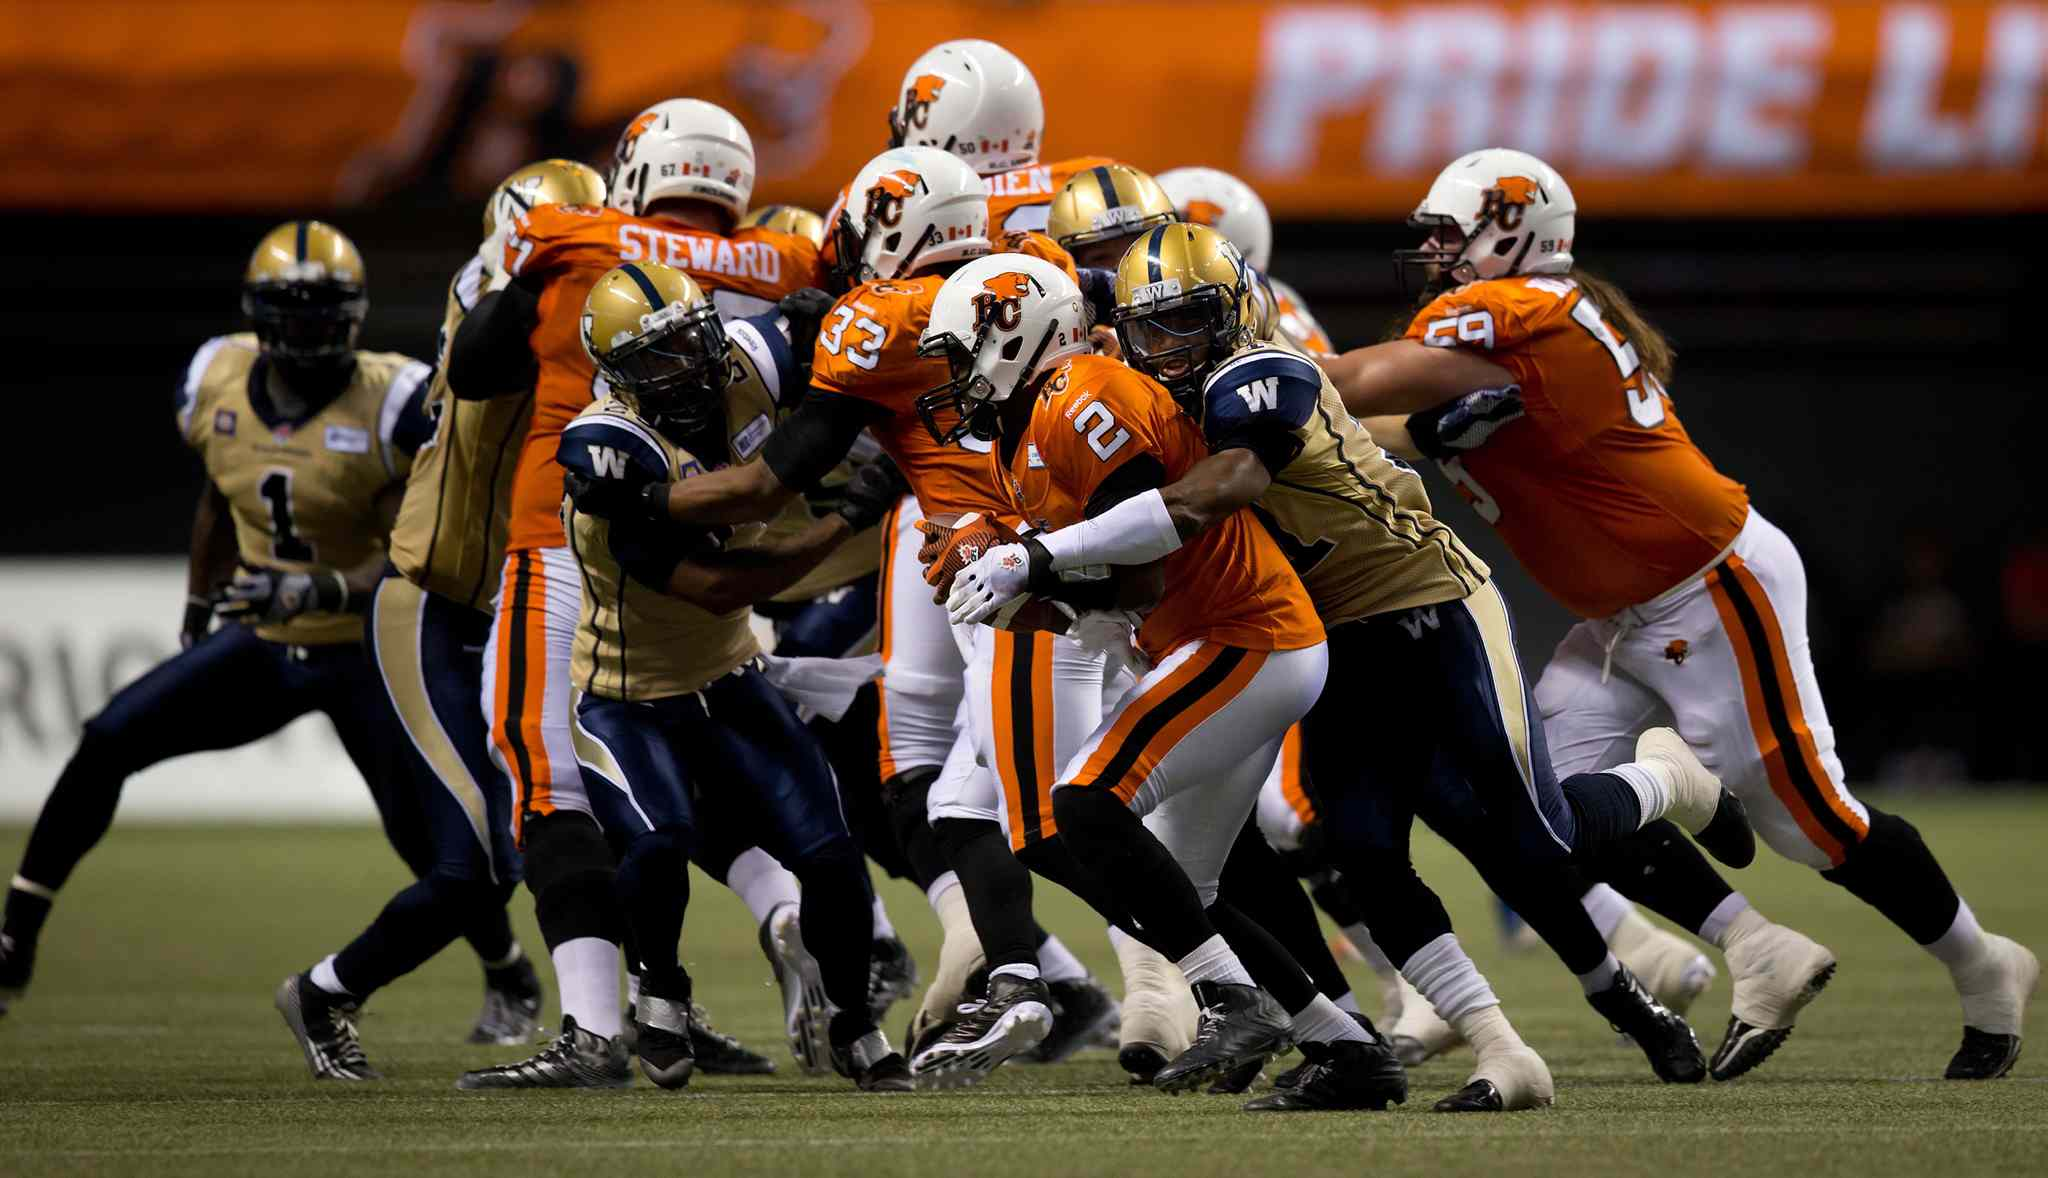 Winnipeg Blue Bombers' Maurice Leggett, second right, sacks B.C. Lions' quarterback Kevin Glenn (2) during the second half of Friday's game.